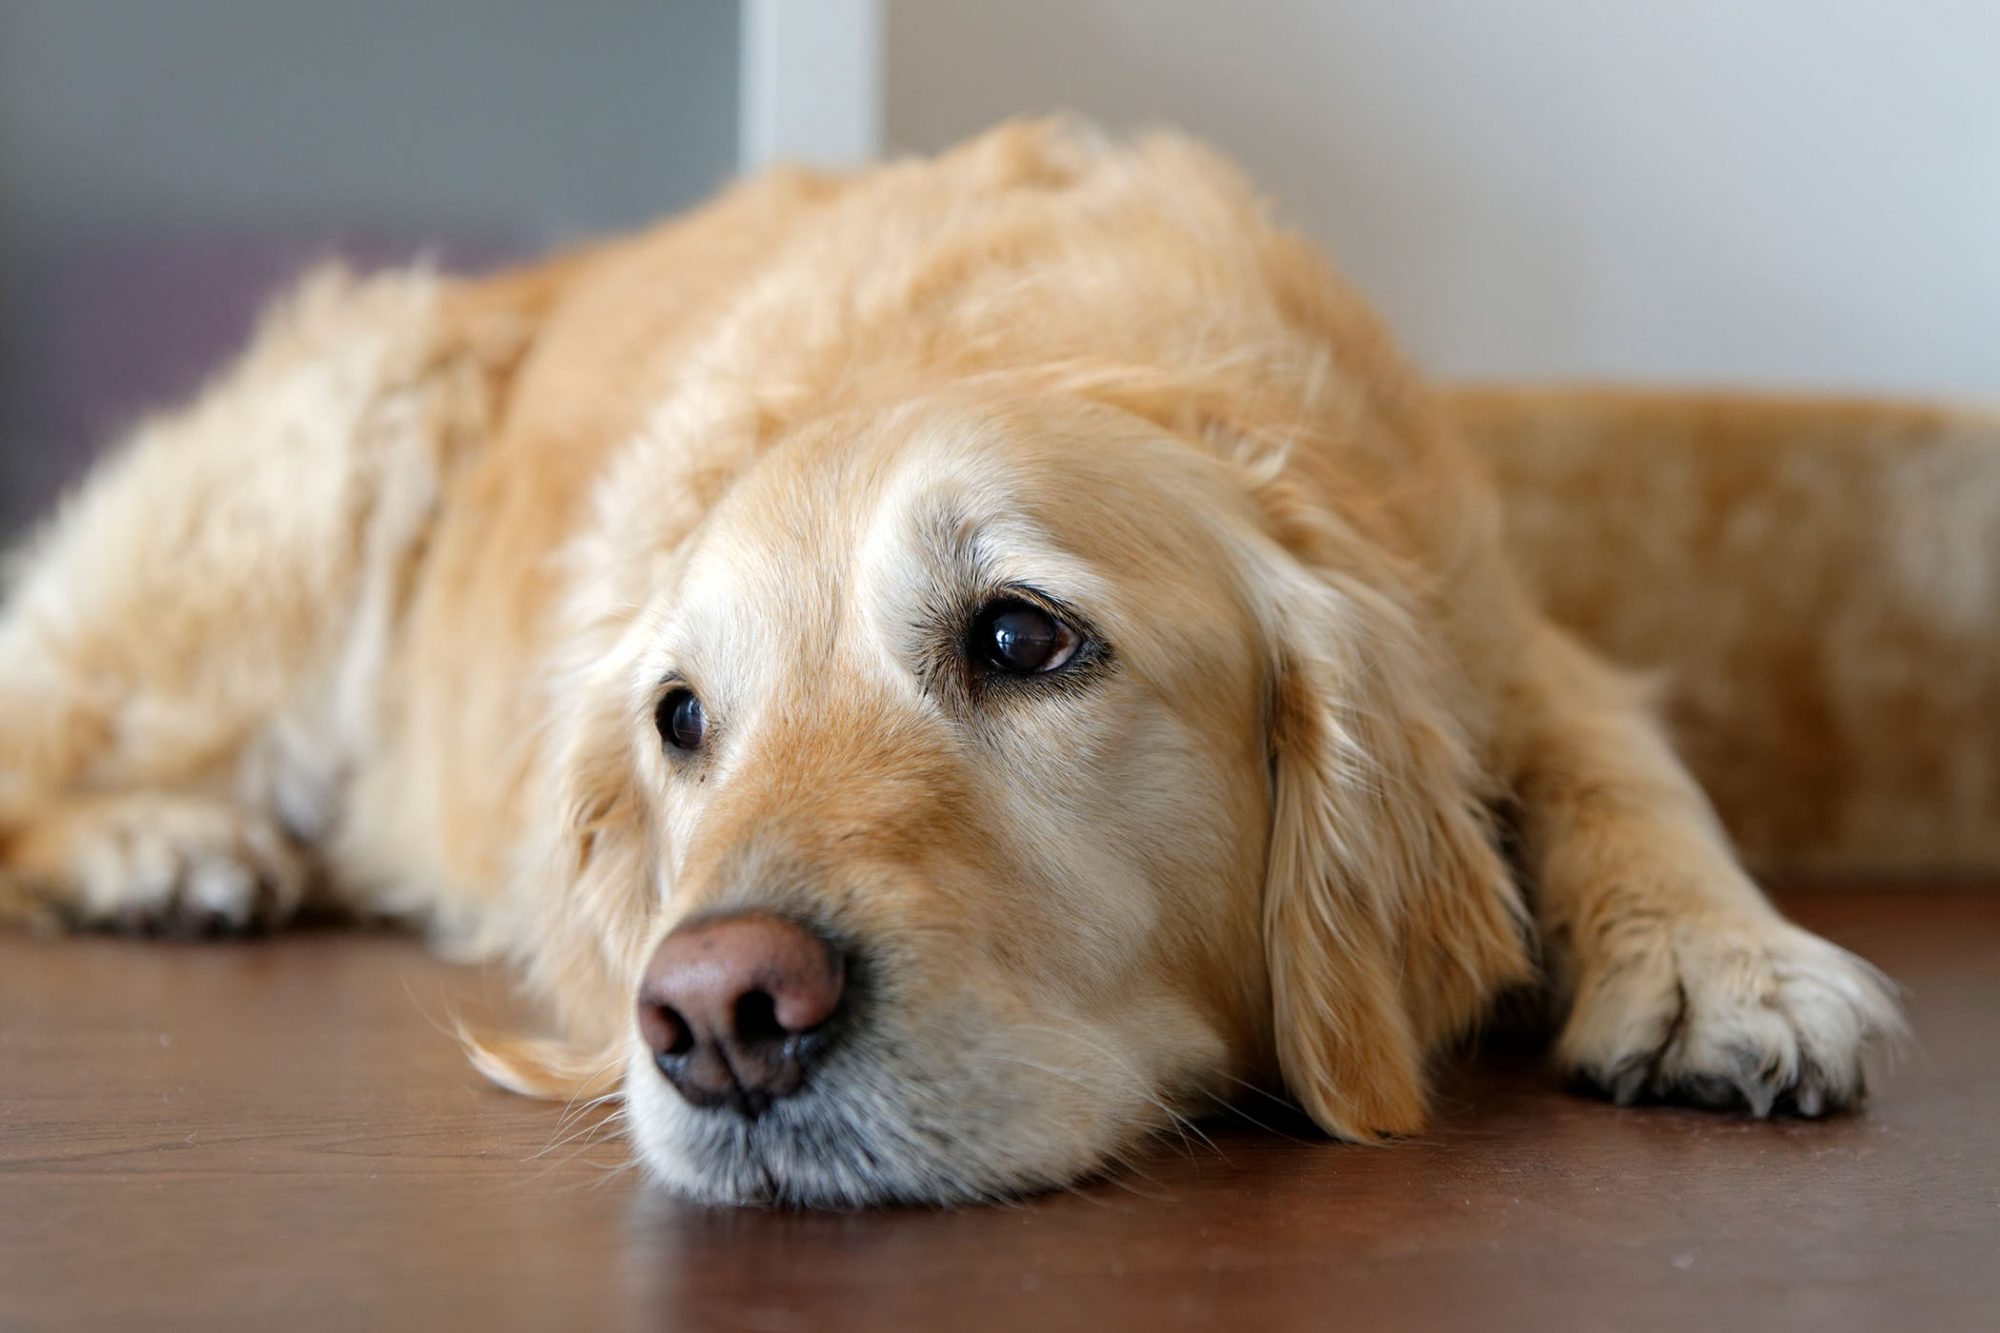 sade golden retriever lying on floor